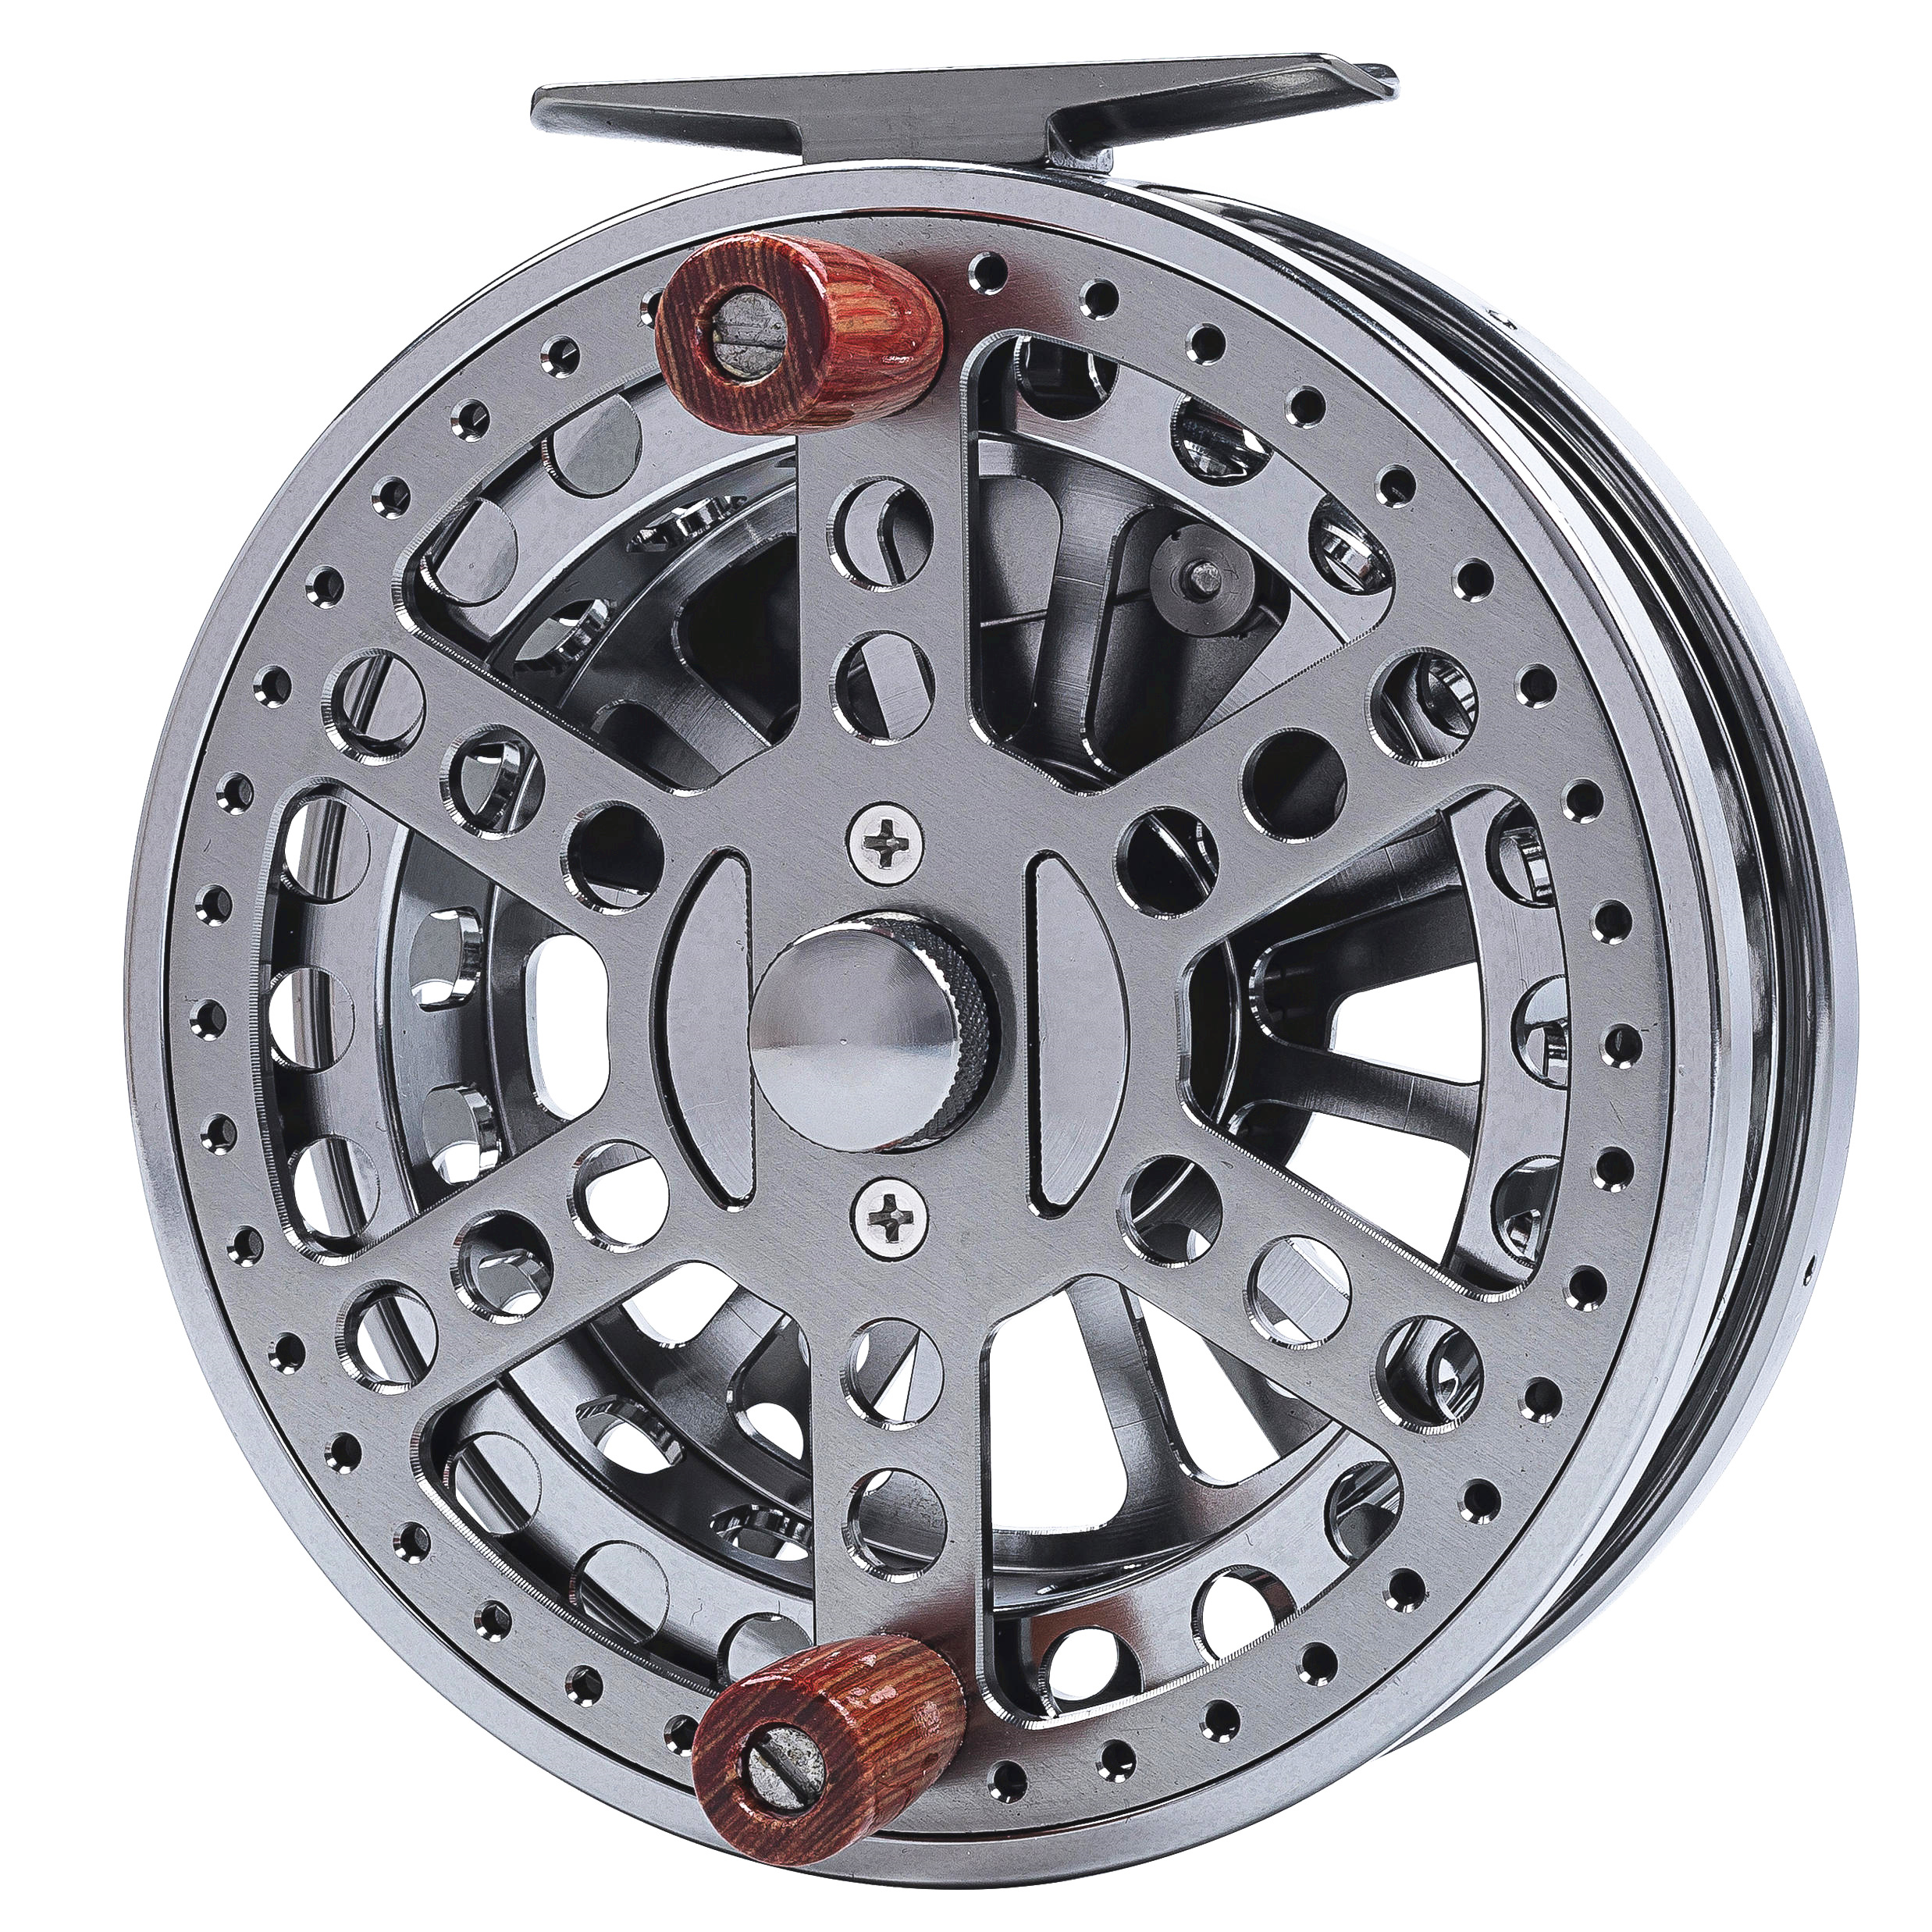 4 3 4 CNC MACHINED ALUMINUM CENTER PIN CENTREPIN FLOATING REEL 120MM 4 3 4 INCH